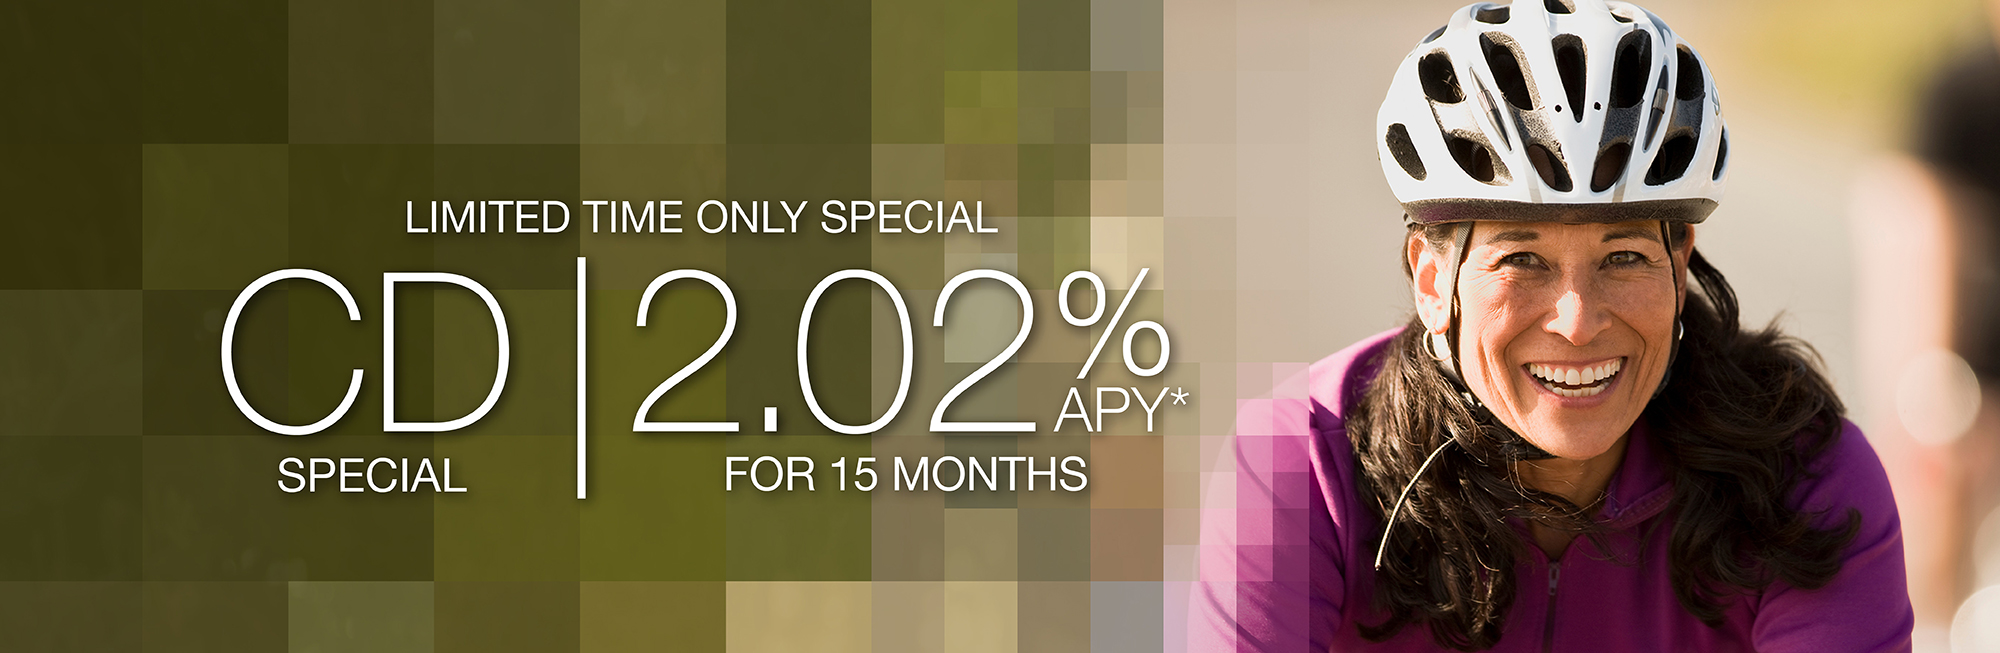 CD Special: 2.02%APY for 15 months! Click to learn about this limited time only special.